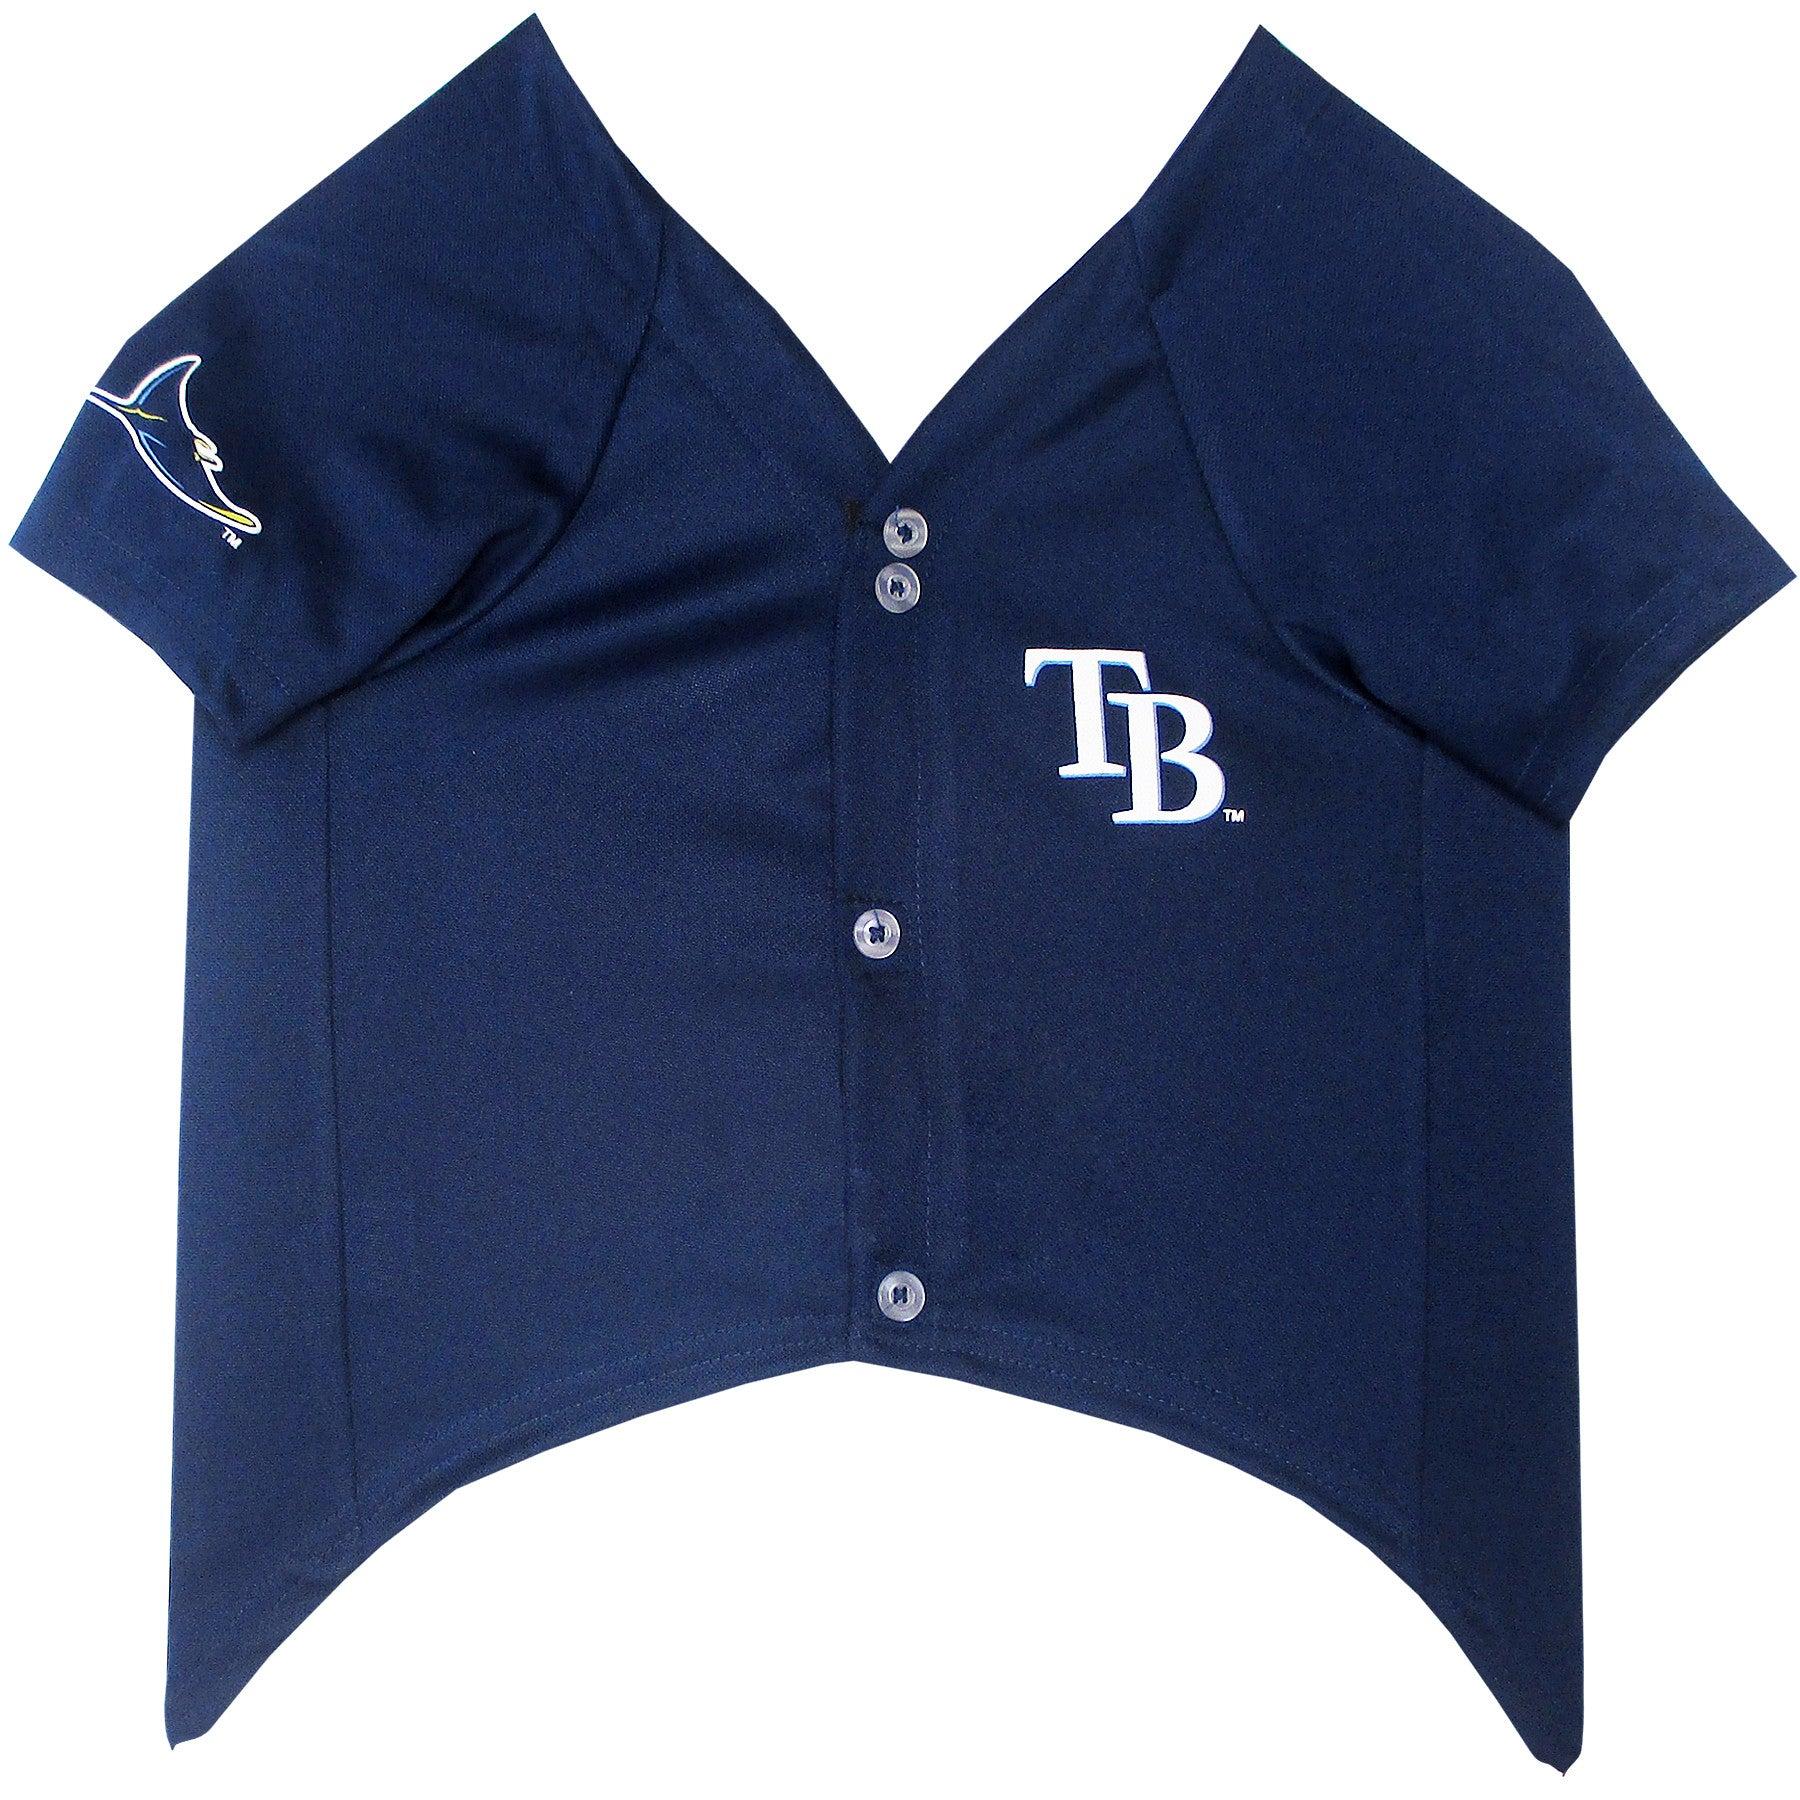 competitive price 68cde 55f35 TAMPA BAY RAYS DOG JERSEY – NEW!